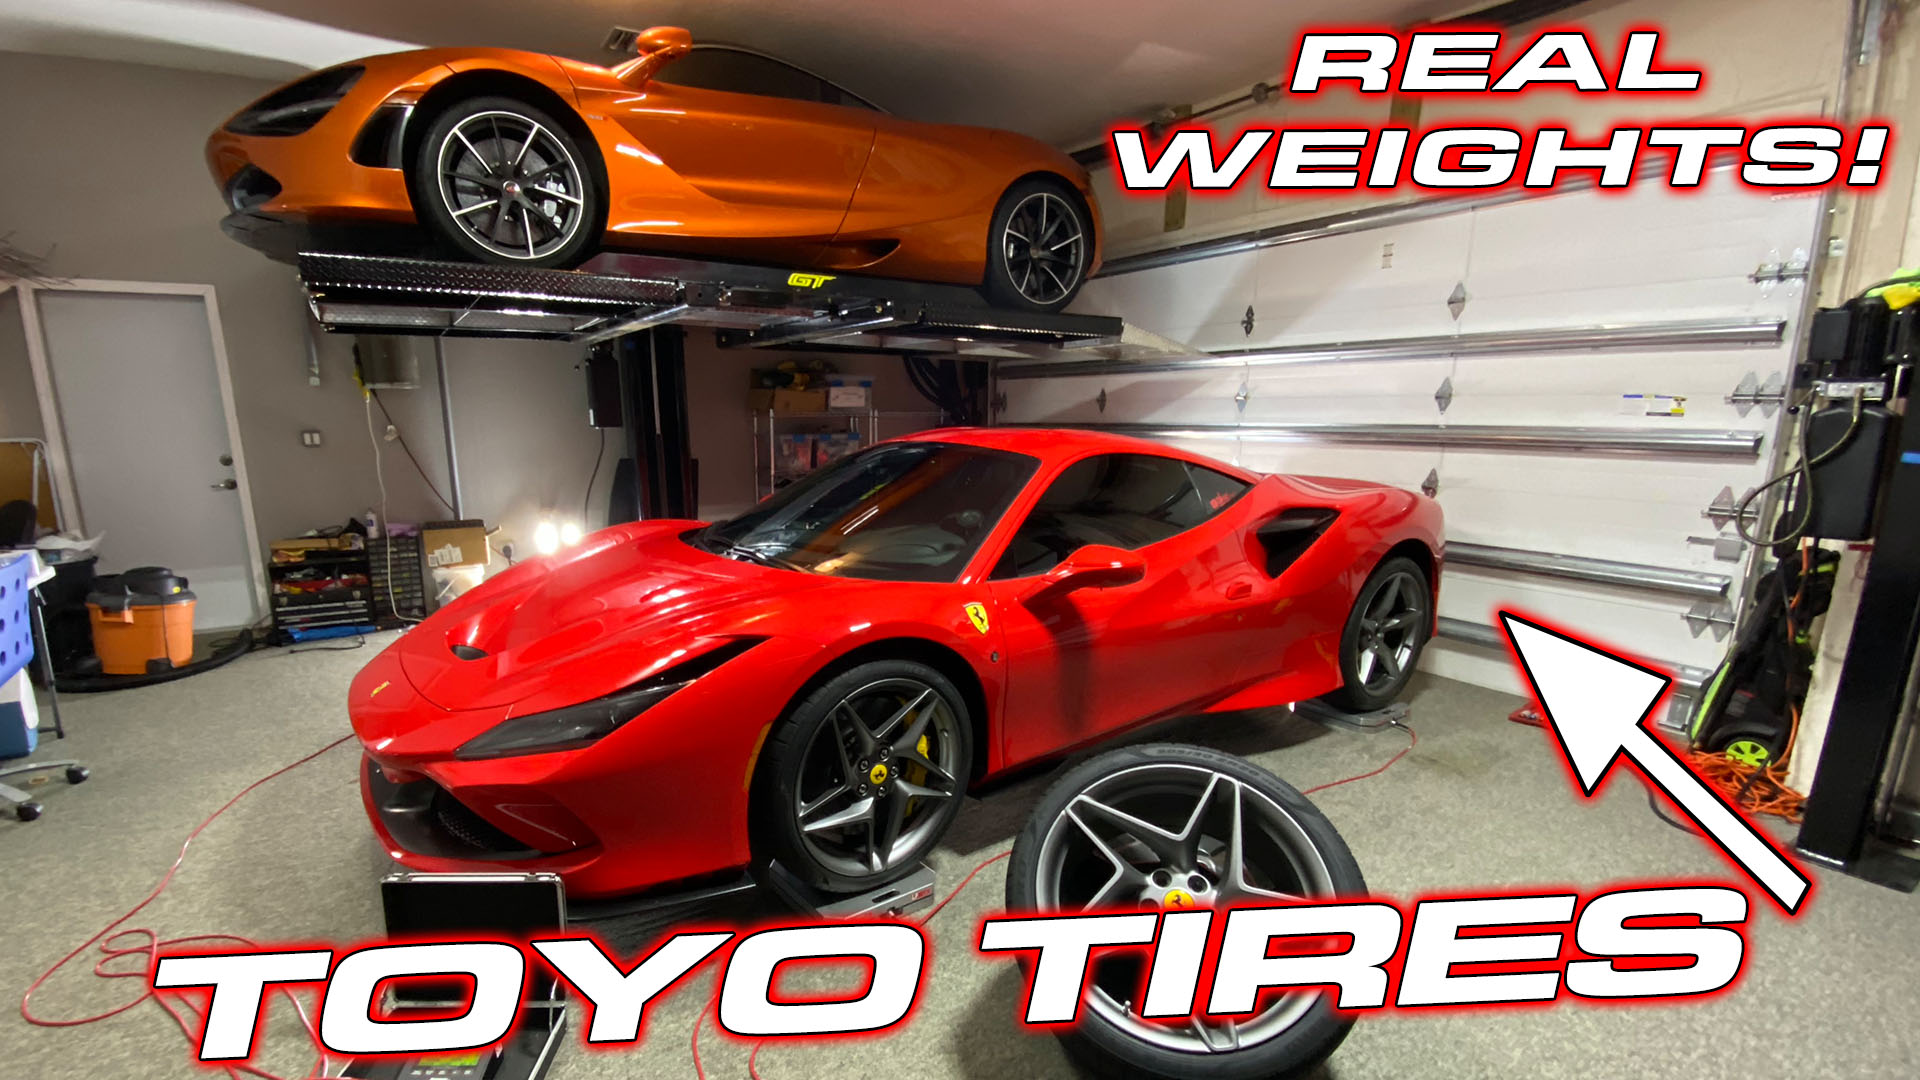 Ferrari F8 Tributo weight in pounds